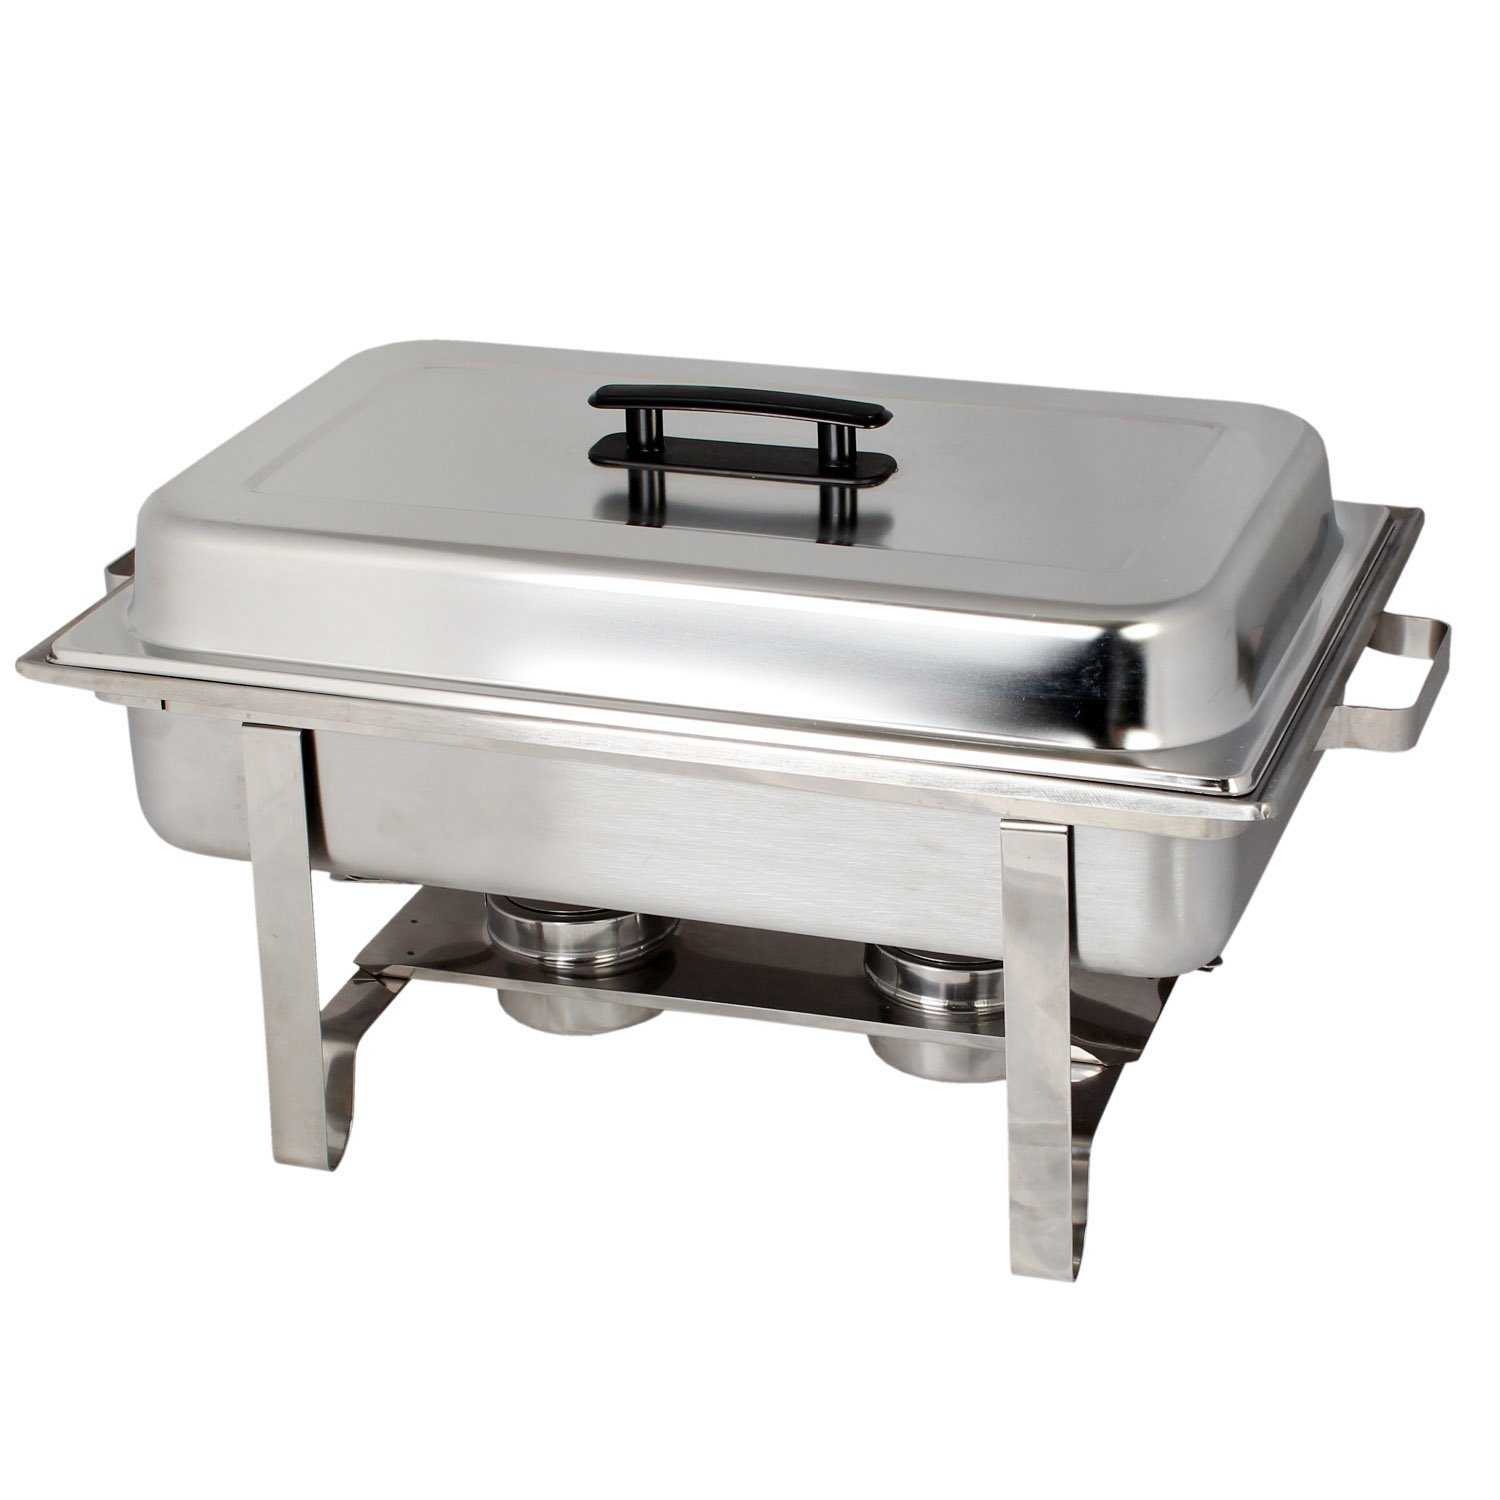 Excellante Stainless Steel 8-Quart Full Size Welded Chafer Set Thunder Group SLRCF001